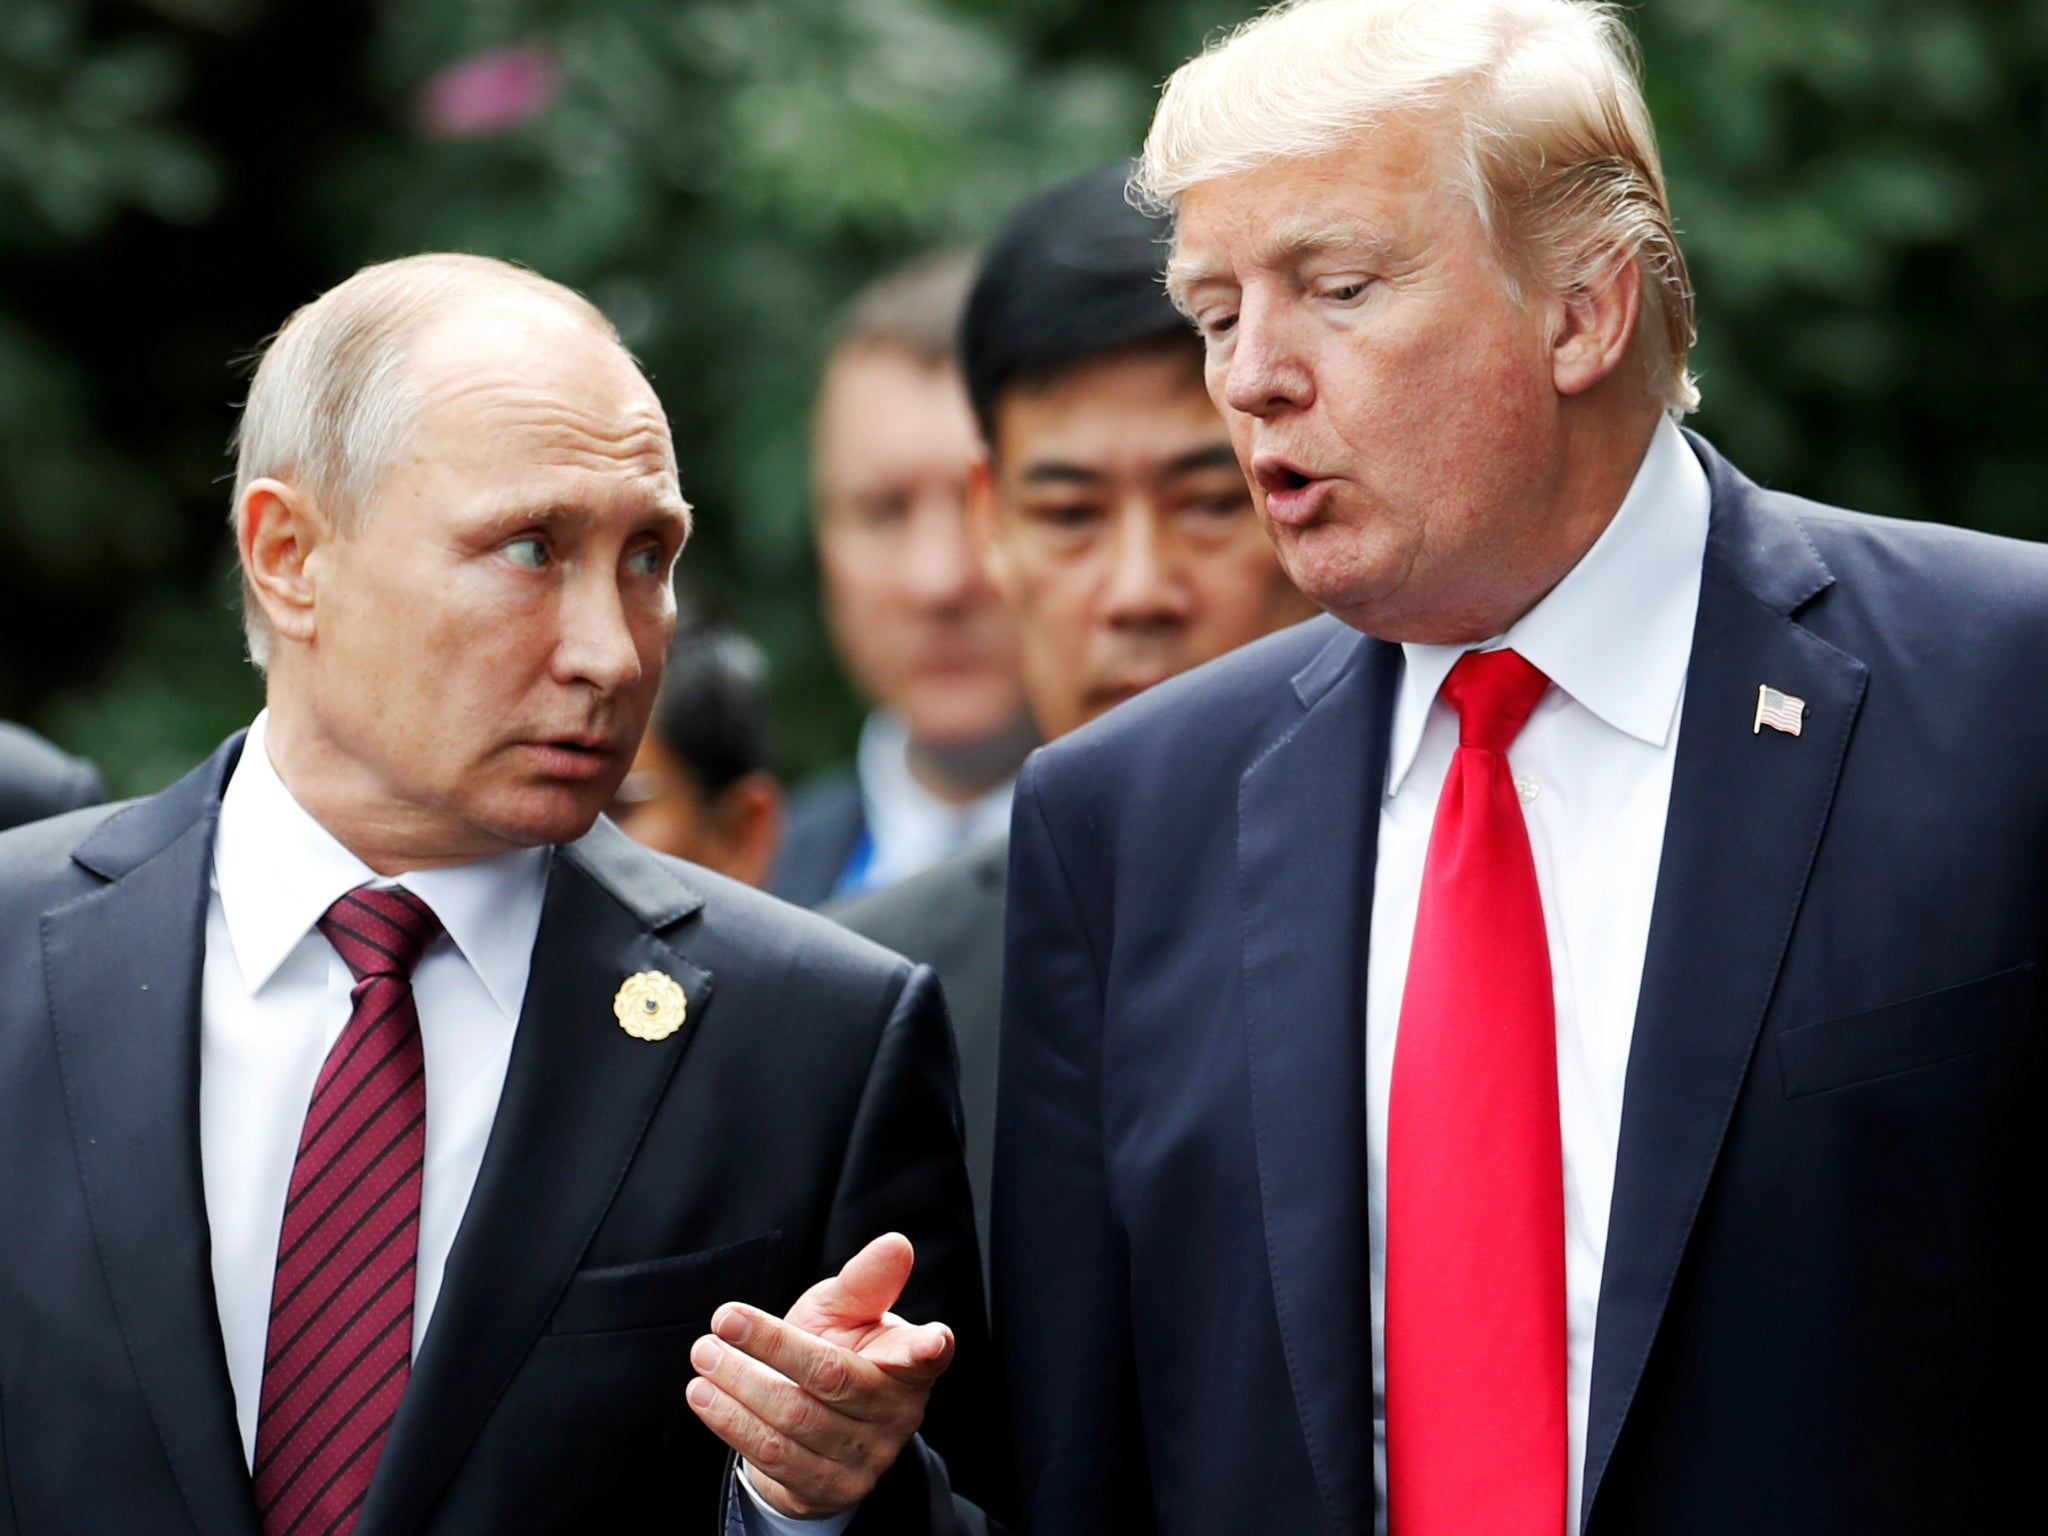 Trump-Putin summit: US president says he will question Russian leader over election meddling